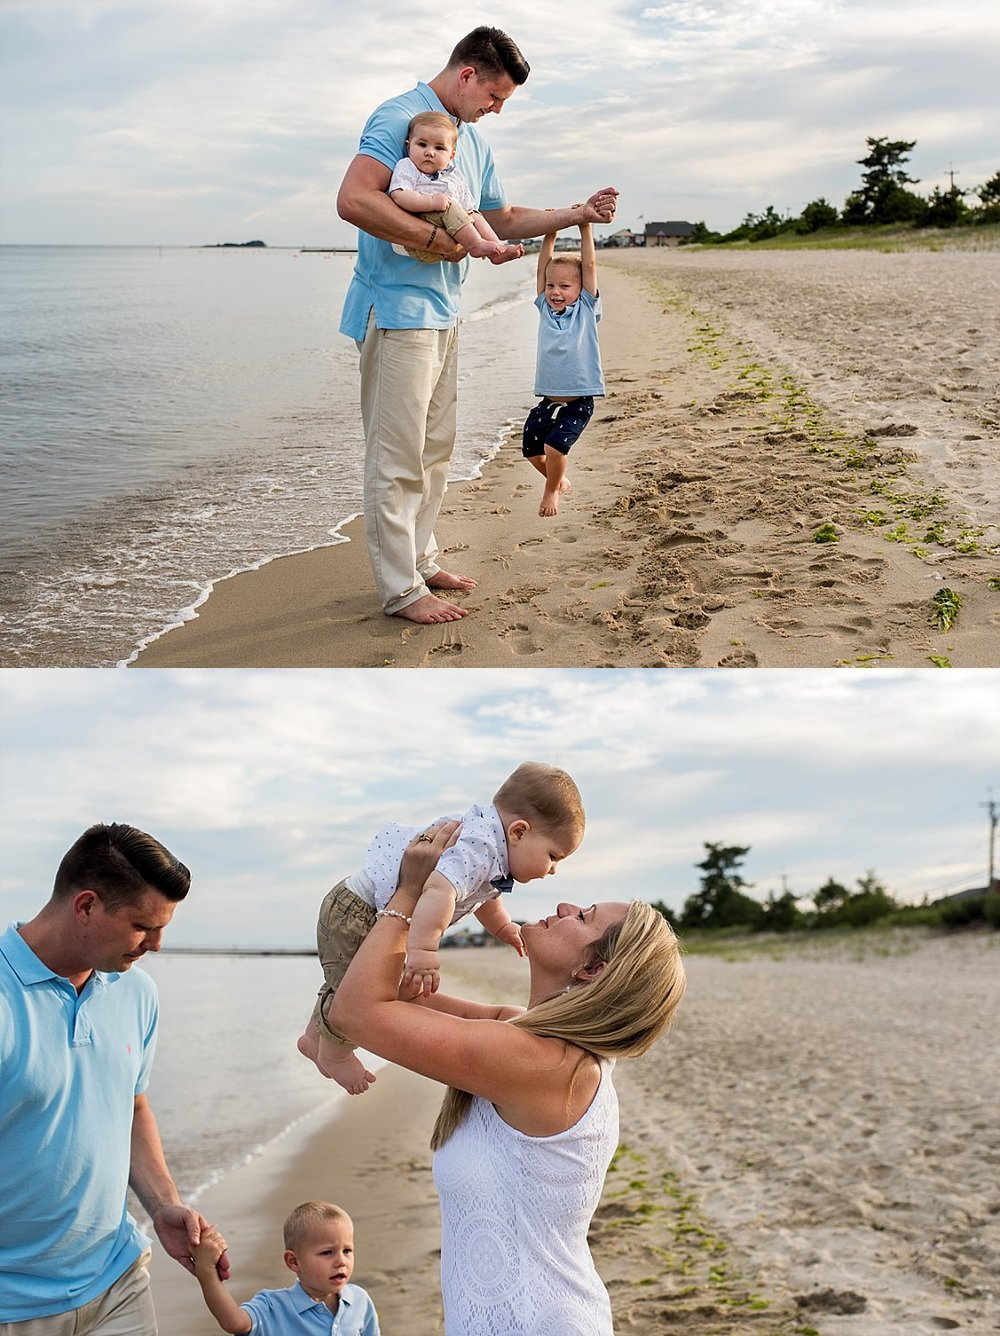 CT baby photographer. Children being silly on the beach in Westbrook, Connecticut photography